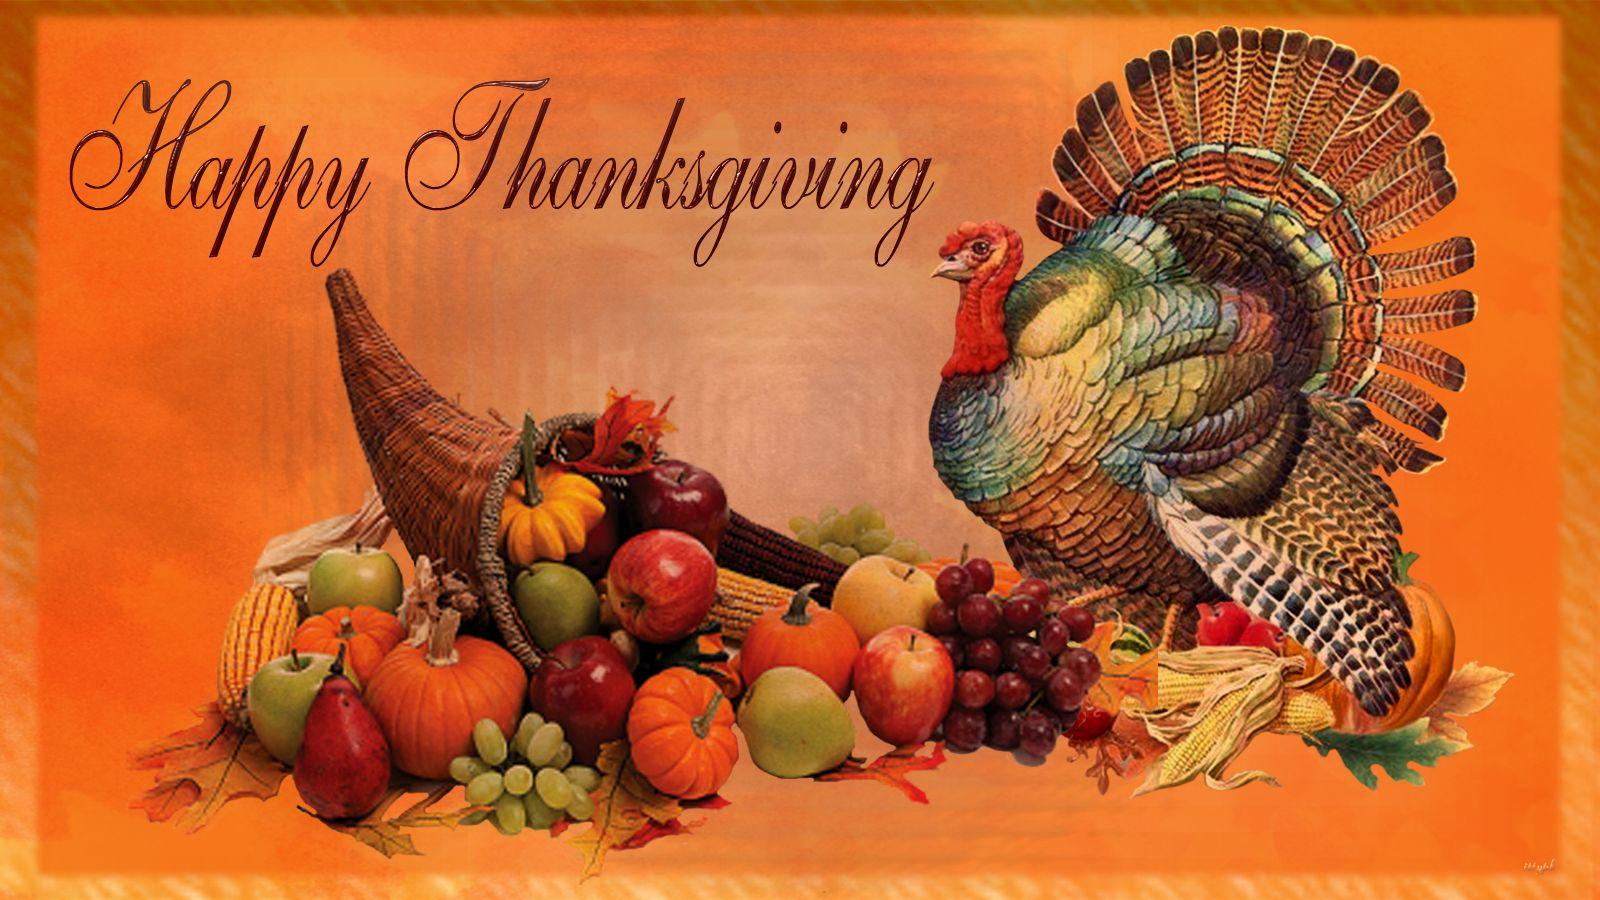 Happy Thanksgiving Turkey Image Pictures & Wallpapers Collection